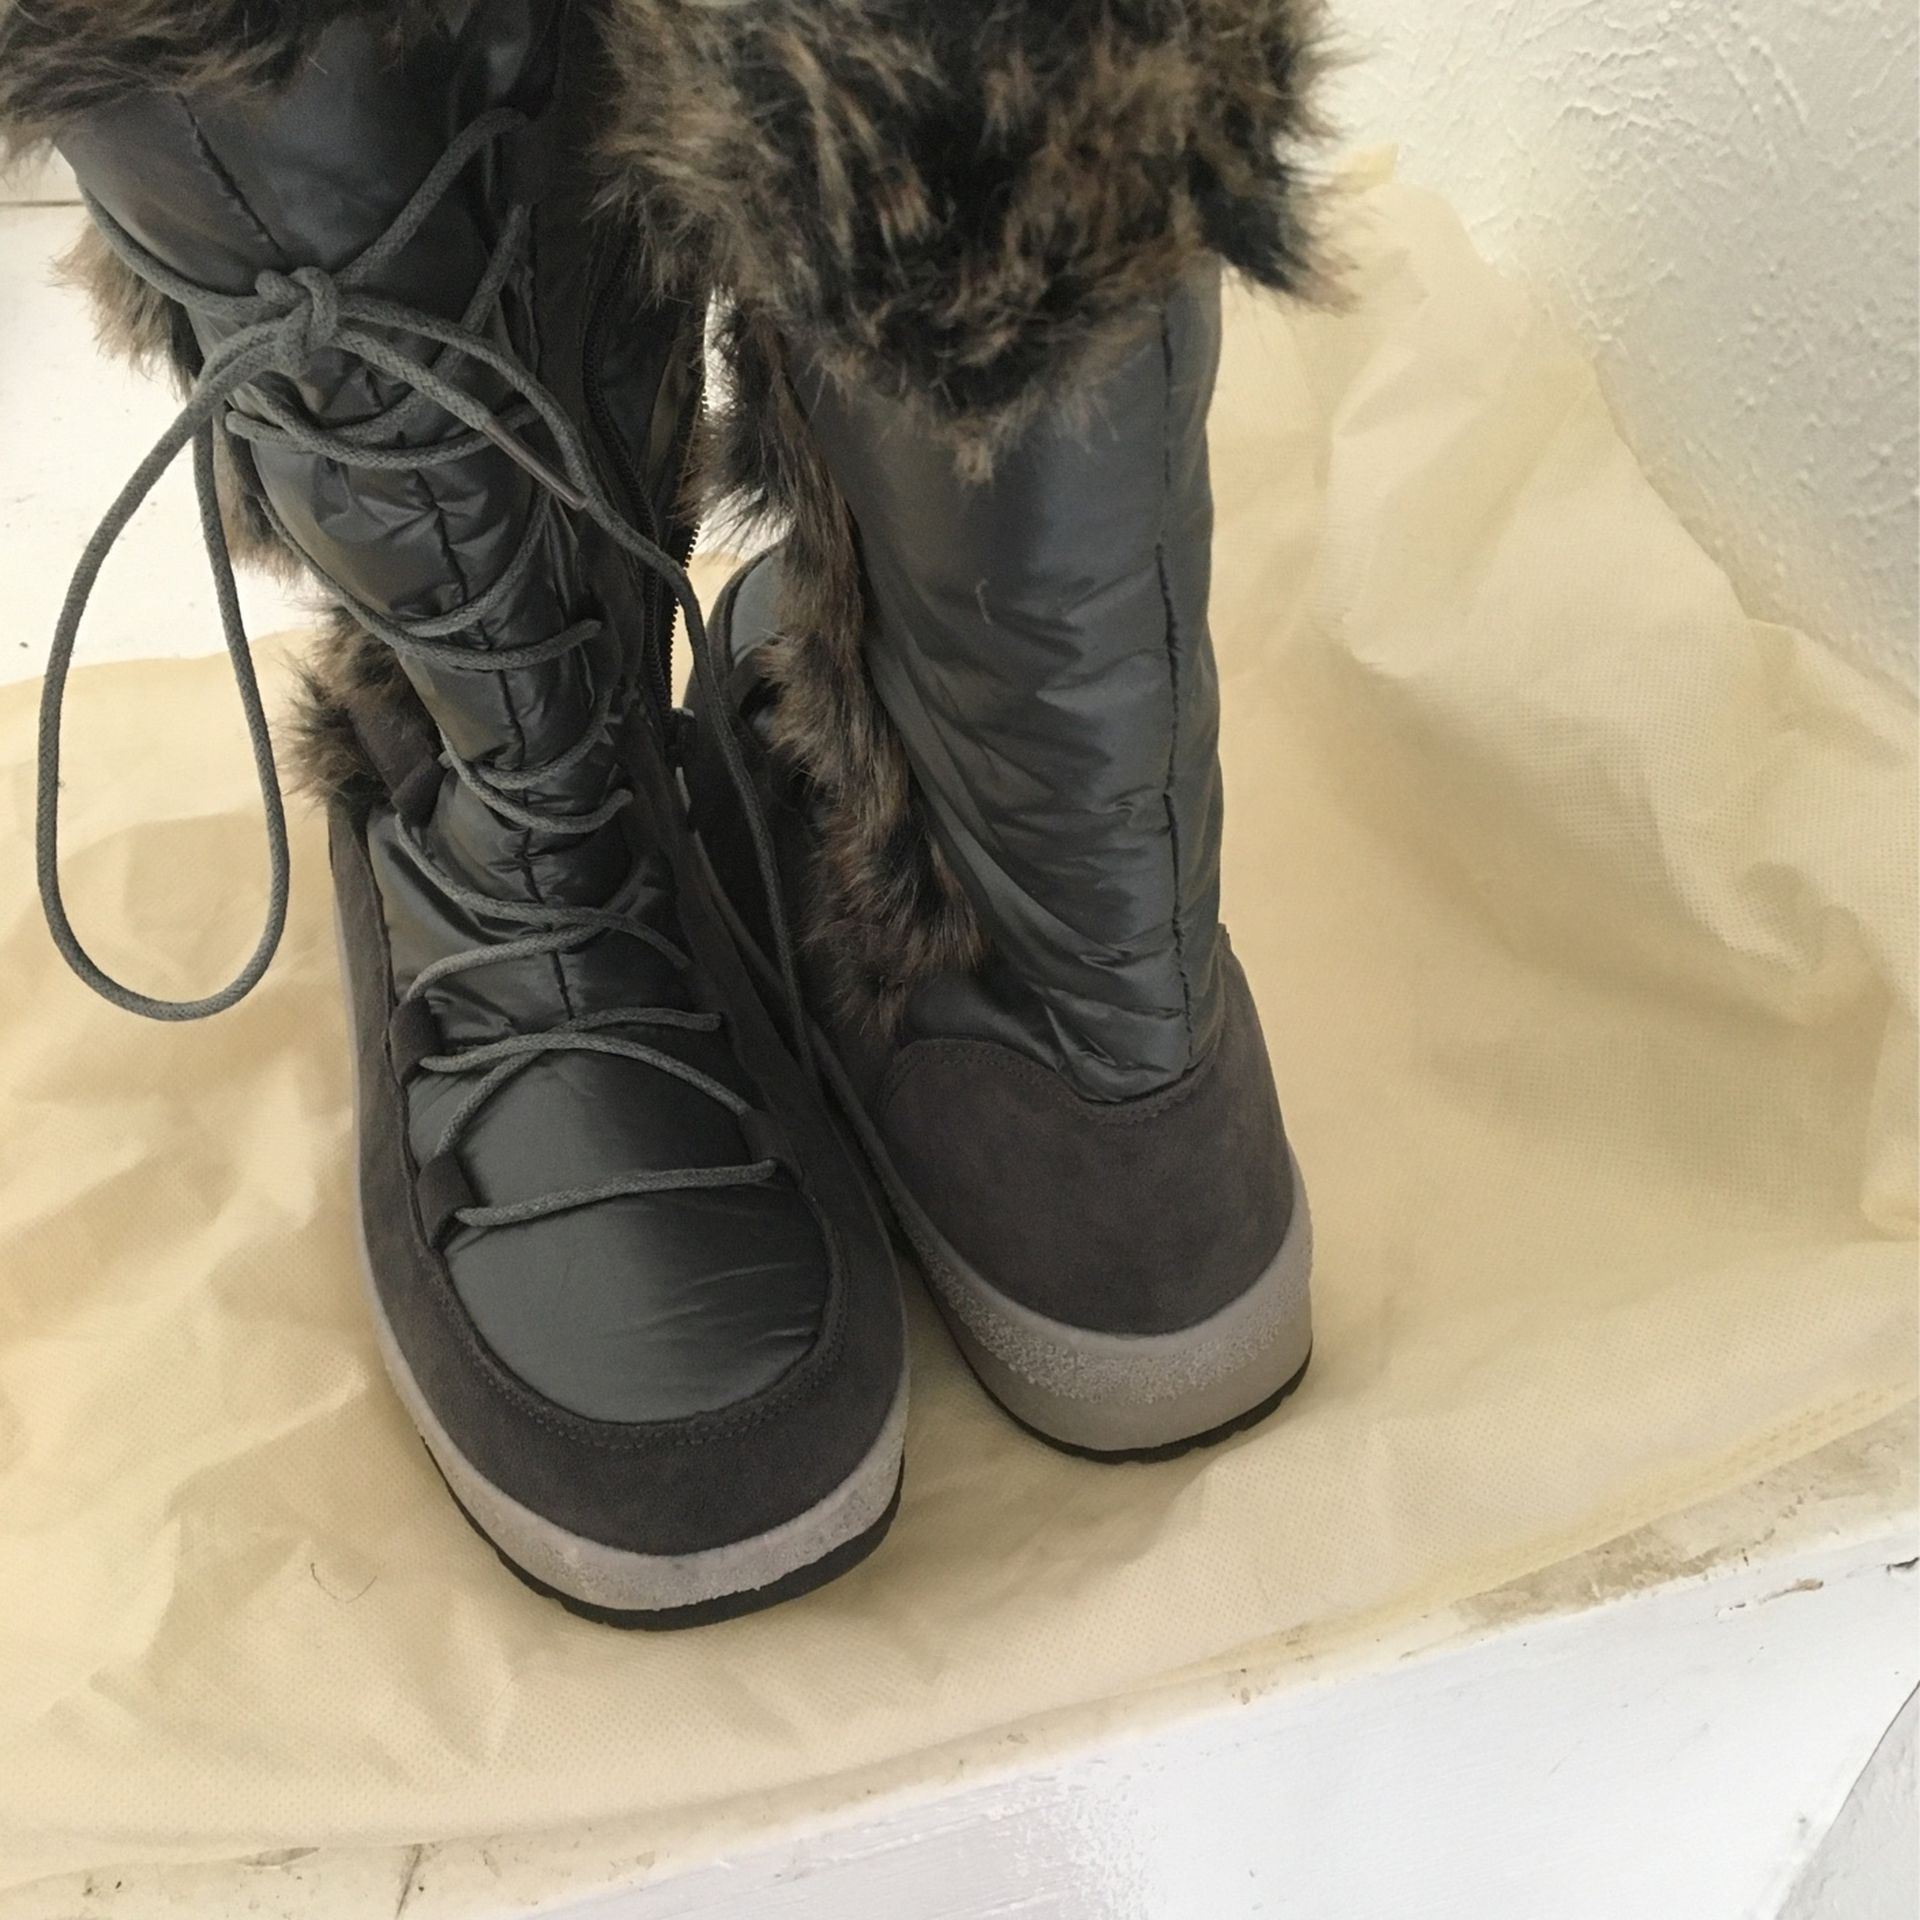 Snow Boots For Women